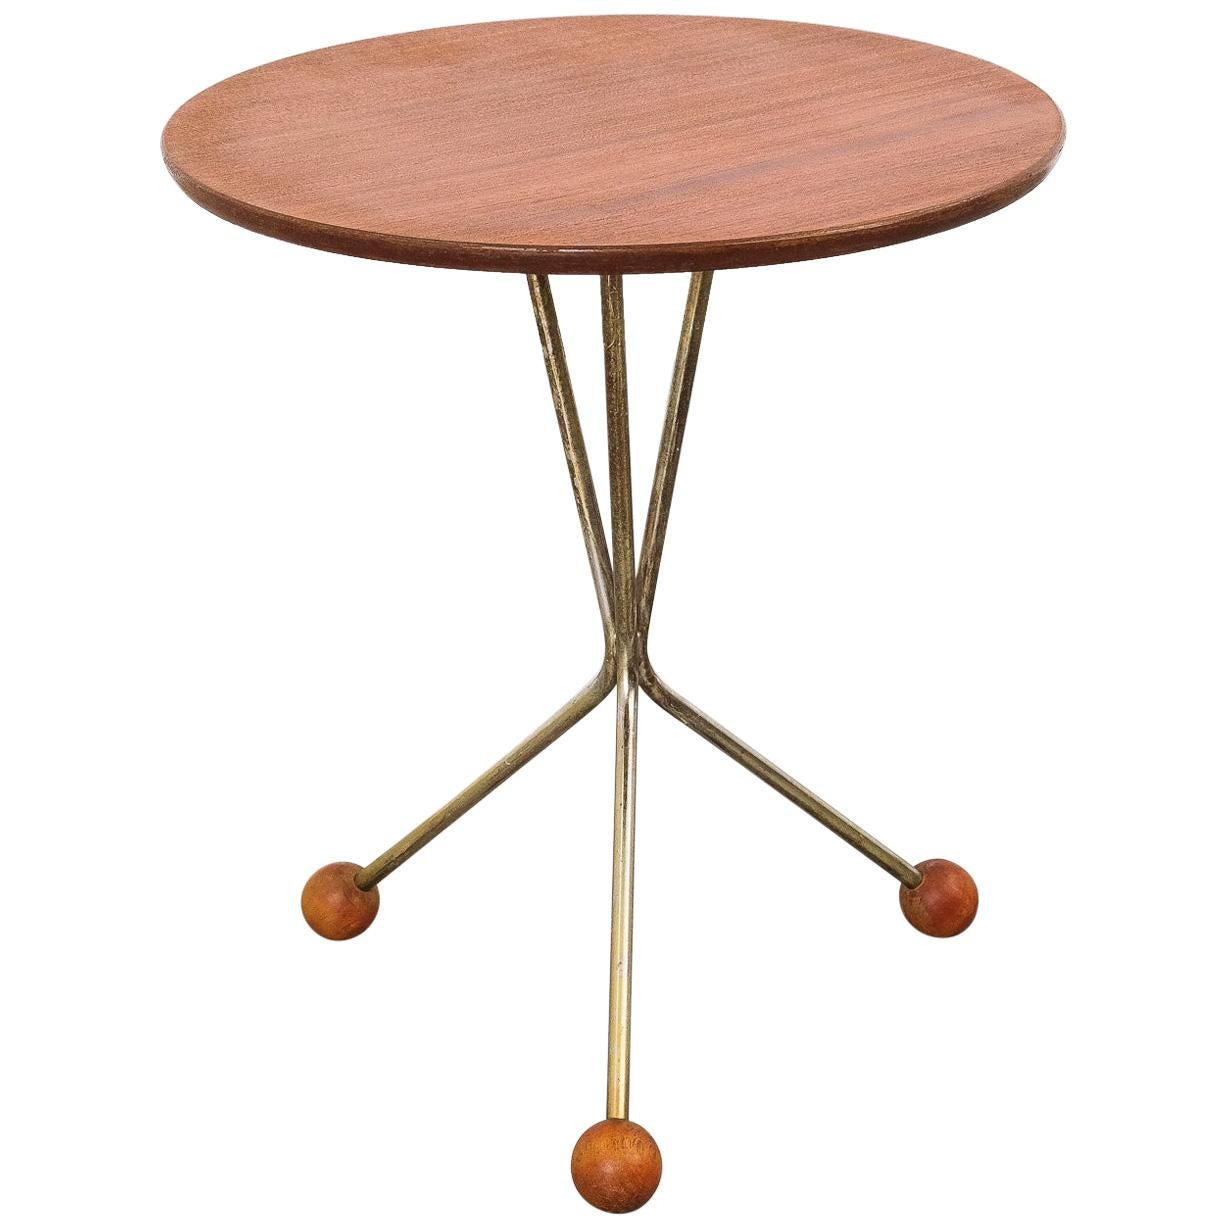 Teak and Brass Side Table by Albert Larsson for Alberts Tibro, 1950s